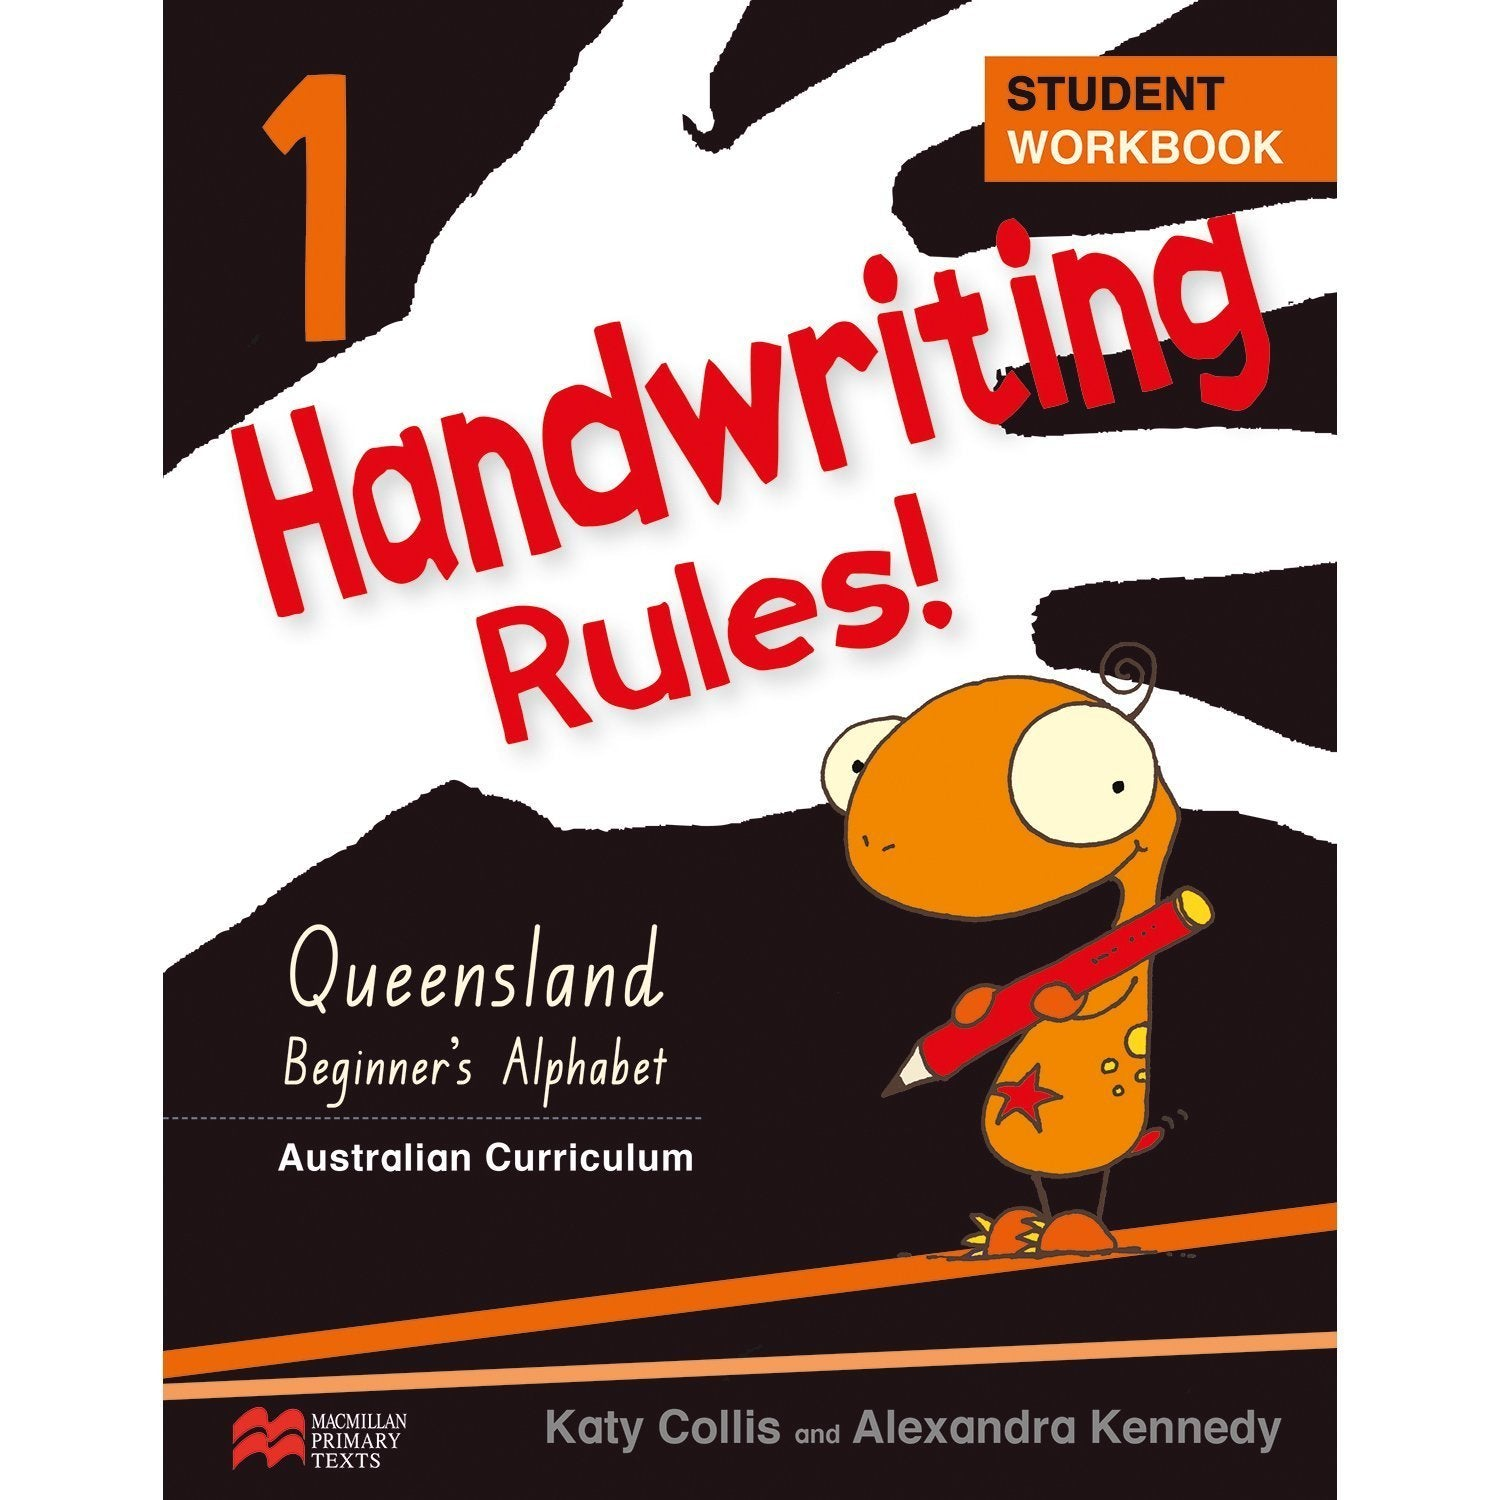 Handwriting Rules! QLD 1